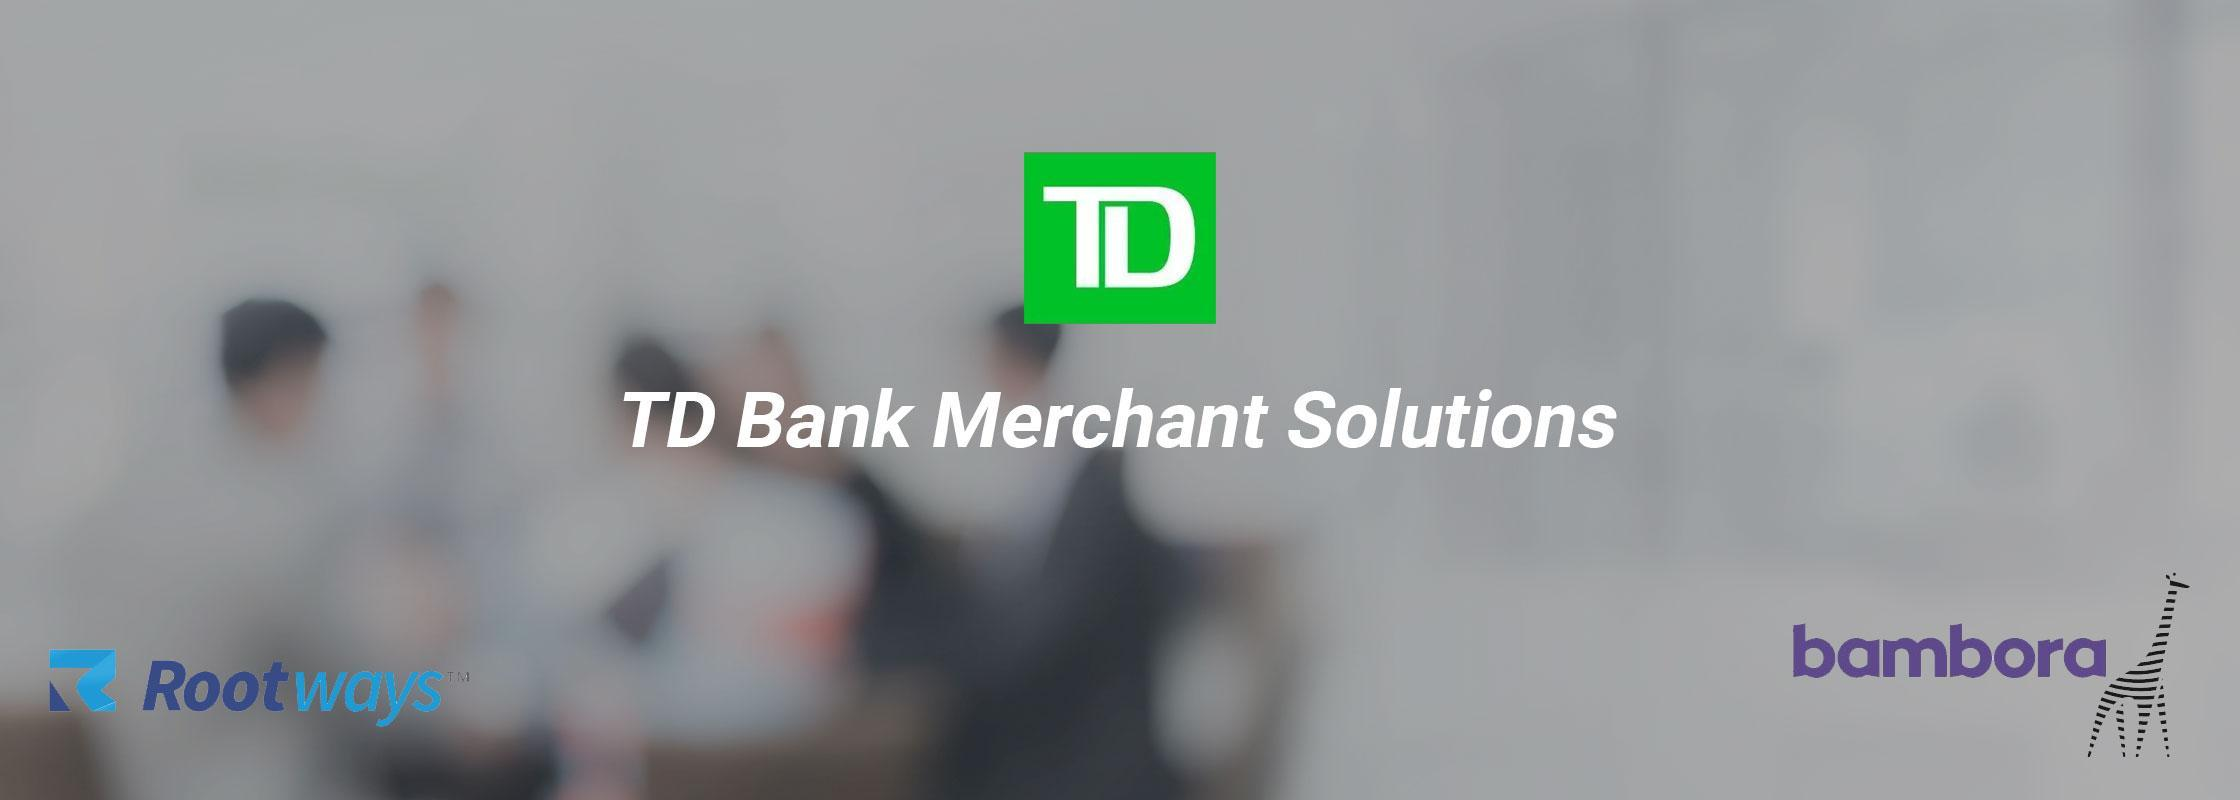 TD Bank Merchant Solutions